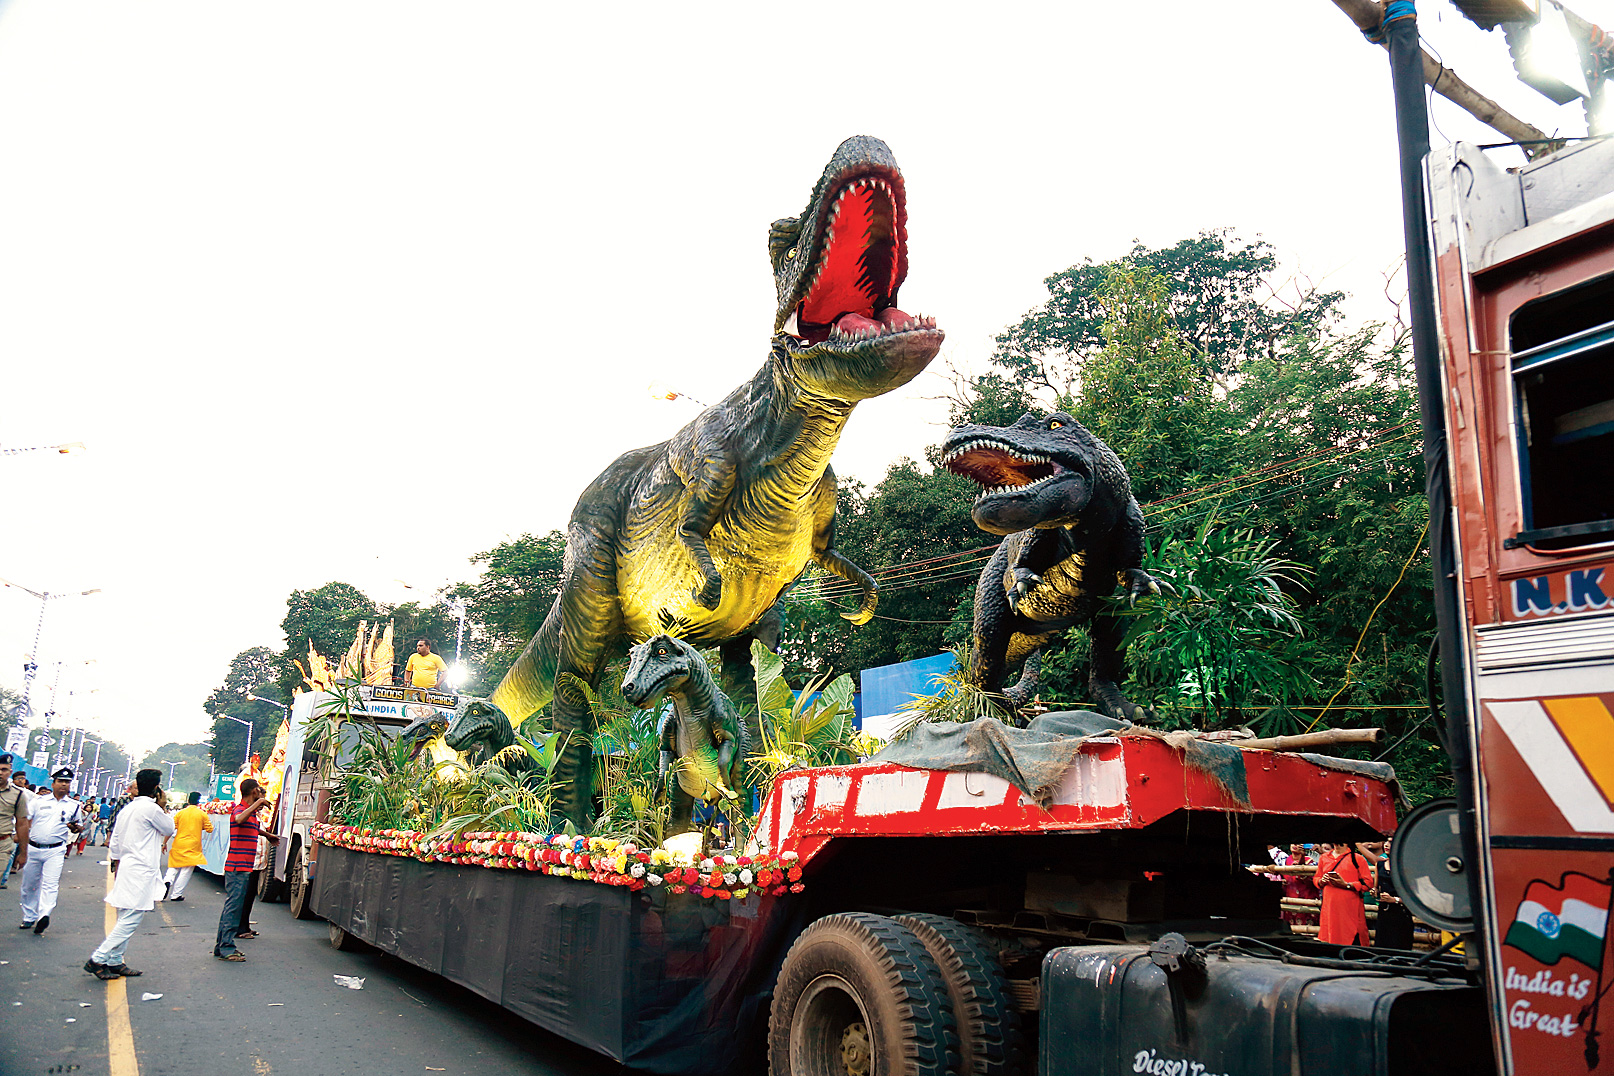 The tableau with the dinosaurs.